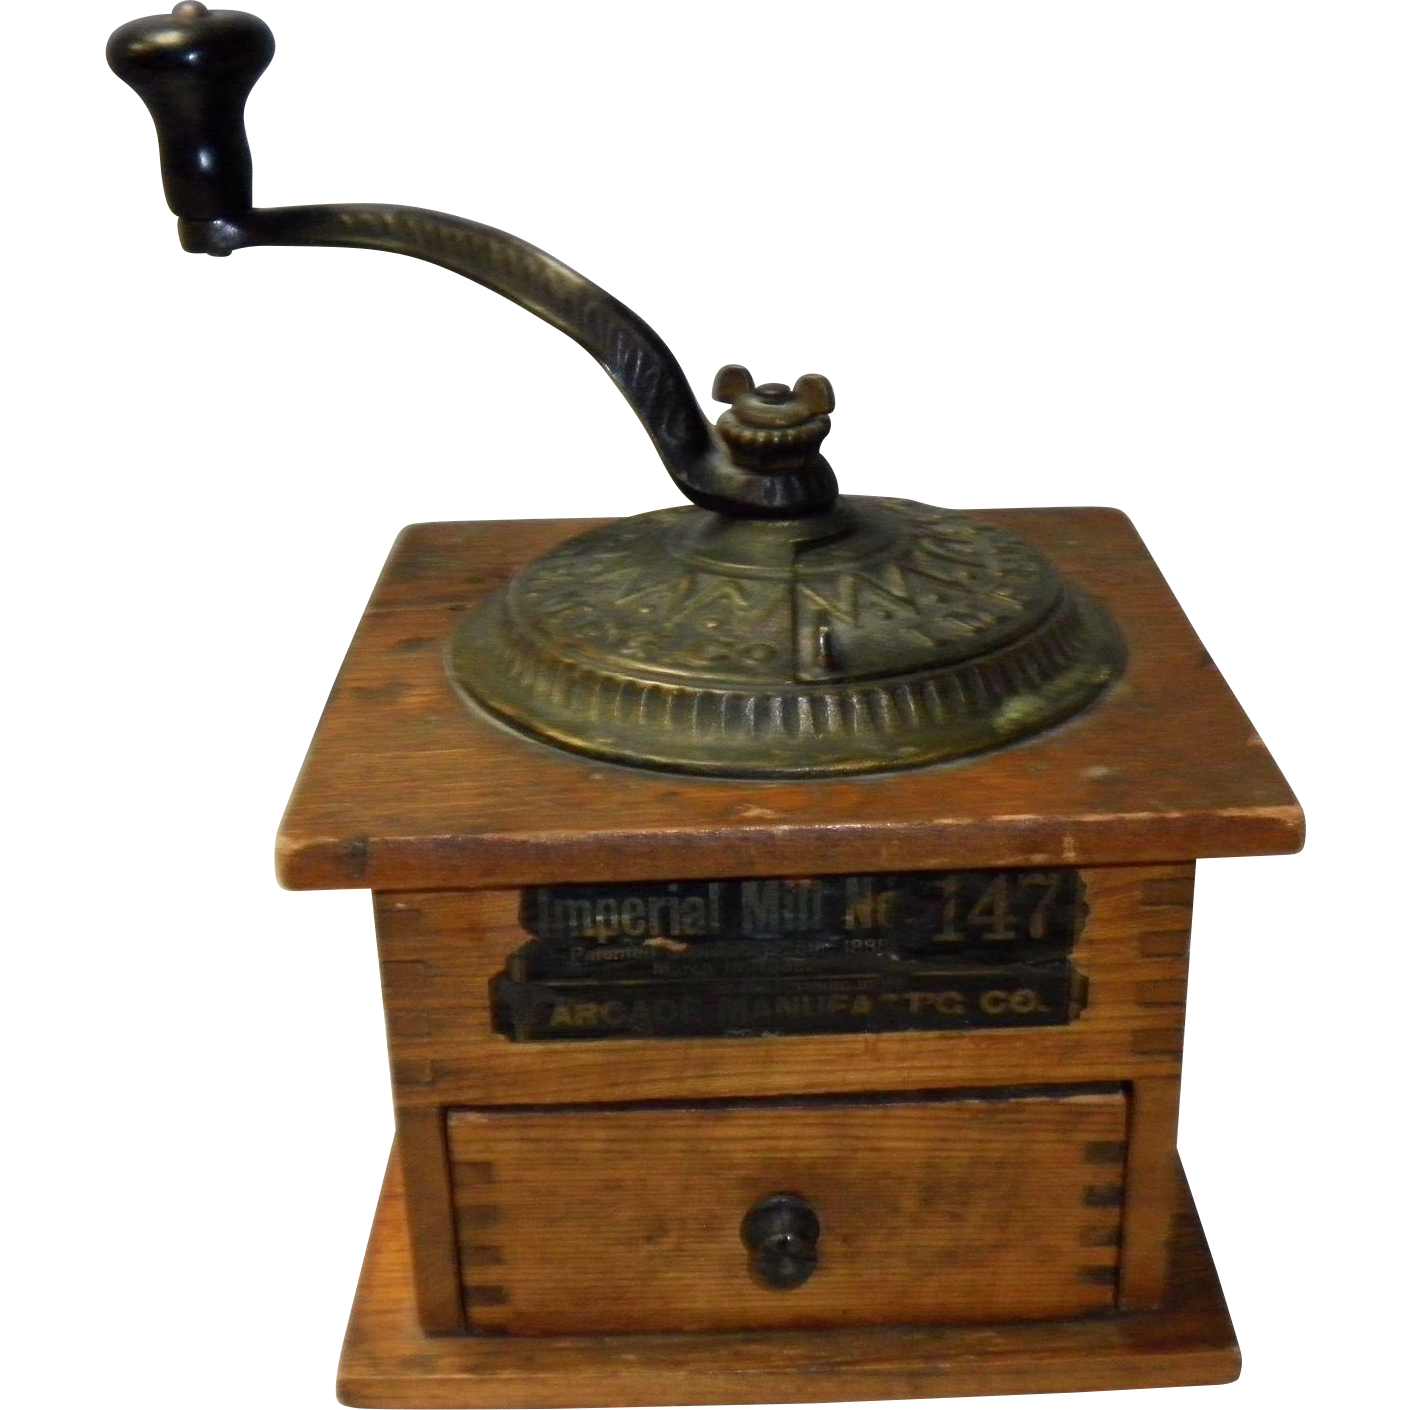 Old Mill Antique Mall Home: Antique Arcade Coffee Mill Grinder Imperial No. 147 Pat